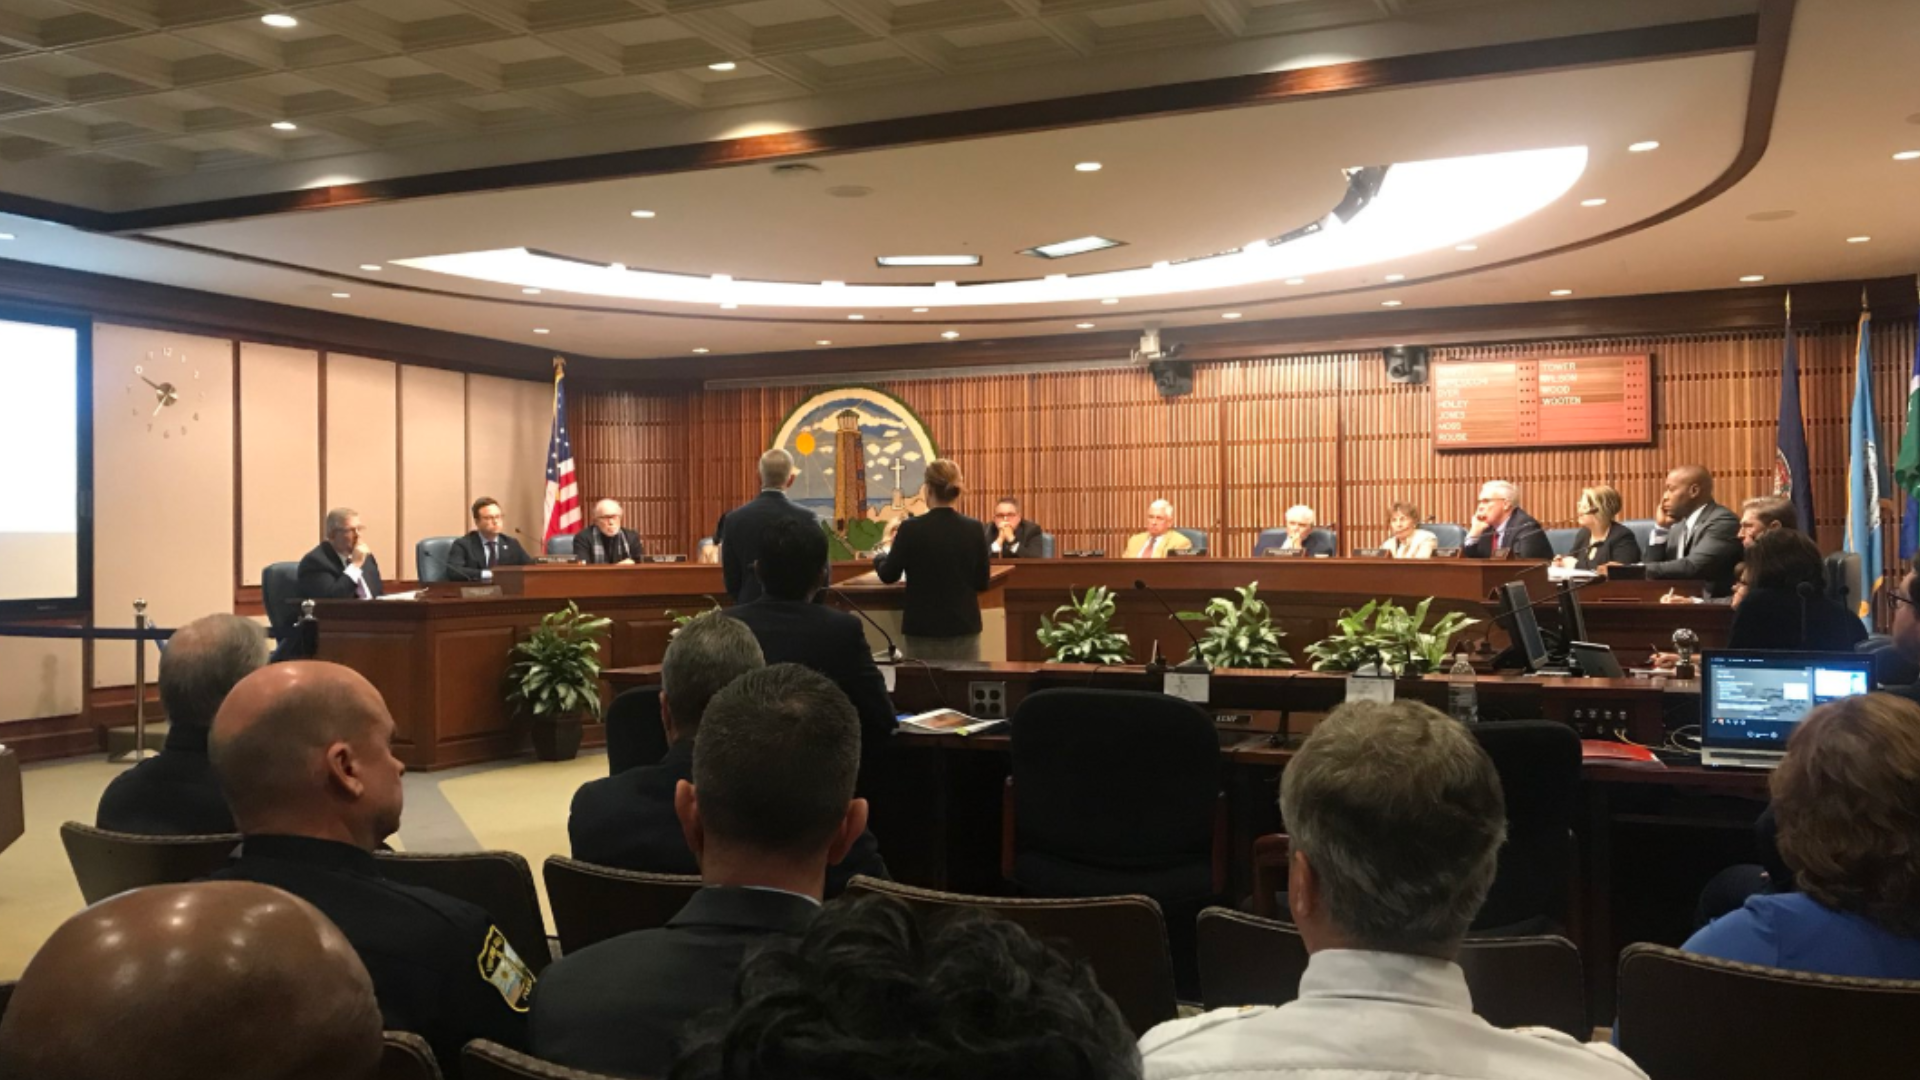 On July 2, Virginia Beach city council approved a resolution for an independent investigation into the shooting and by July 17, Hillard Heintz was chosen from 15 other firms to conduct the investigation. Hillard Heintz sent an 11 person team to look into the mass shooting. The investigation began on July 22.